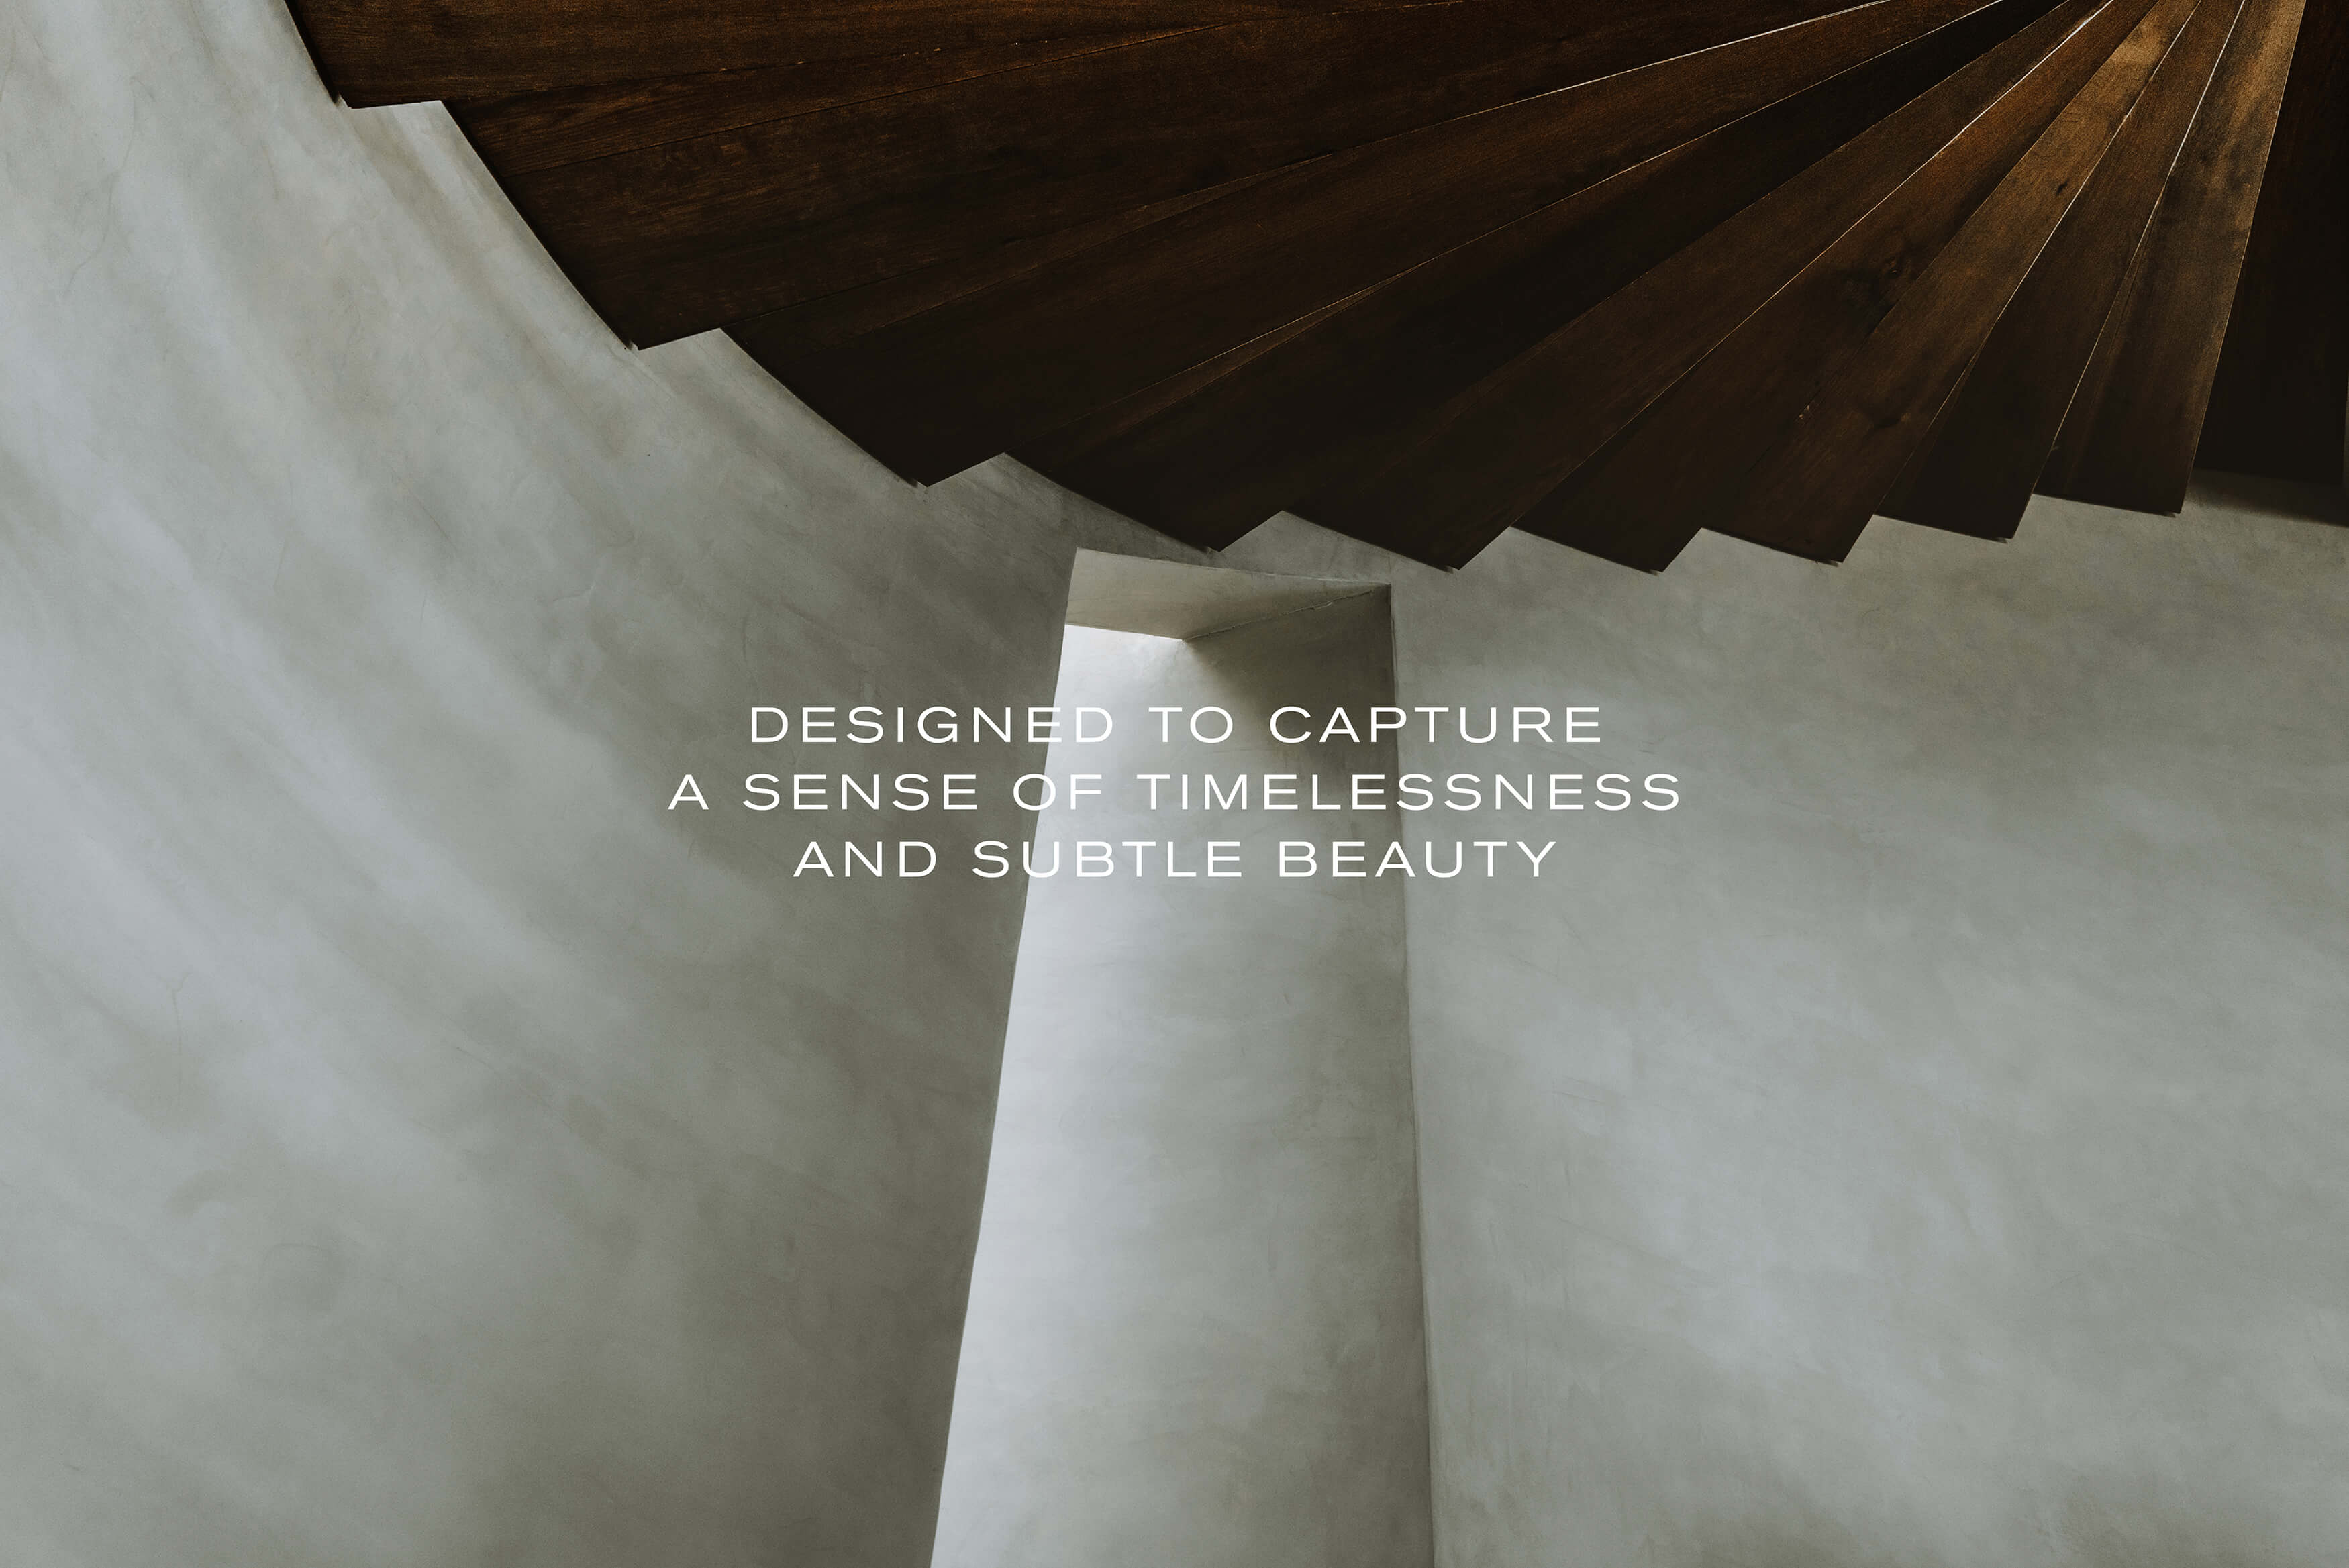 Stafford Architecture - Brand Statement, Designed to capture a sense of timelessness and subtle beauty